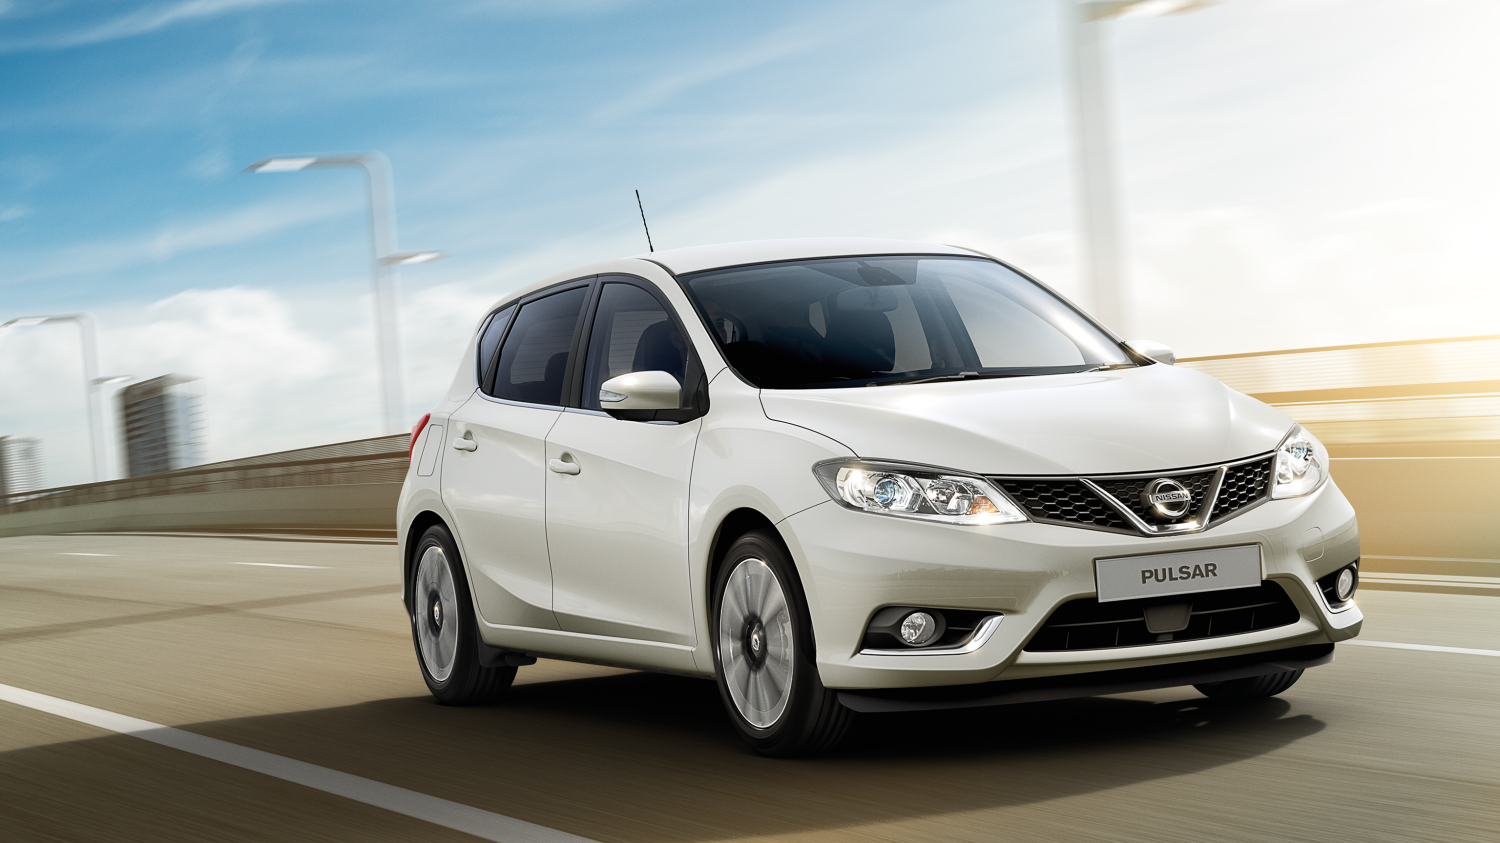 Nissan Pulsar – Hatchback | 3/4 front view on the road